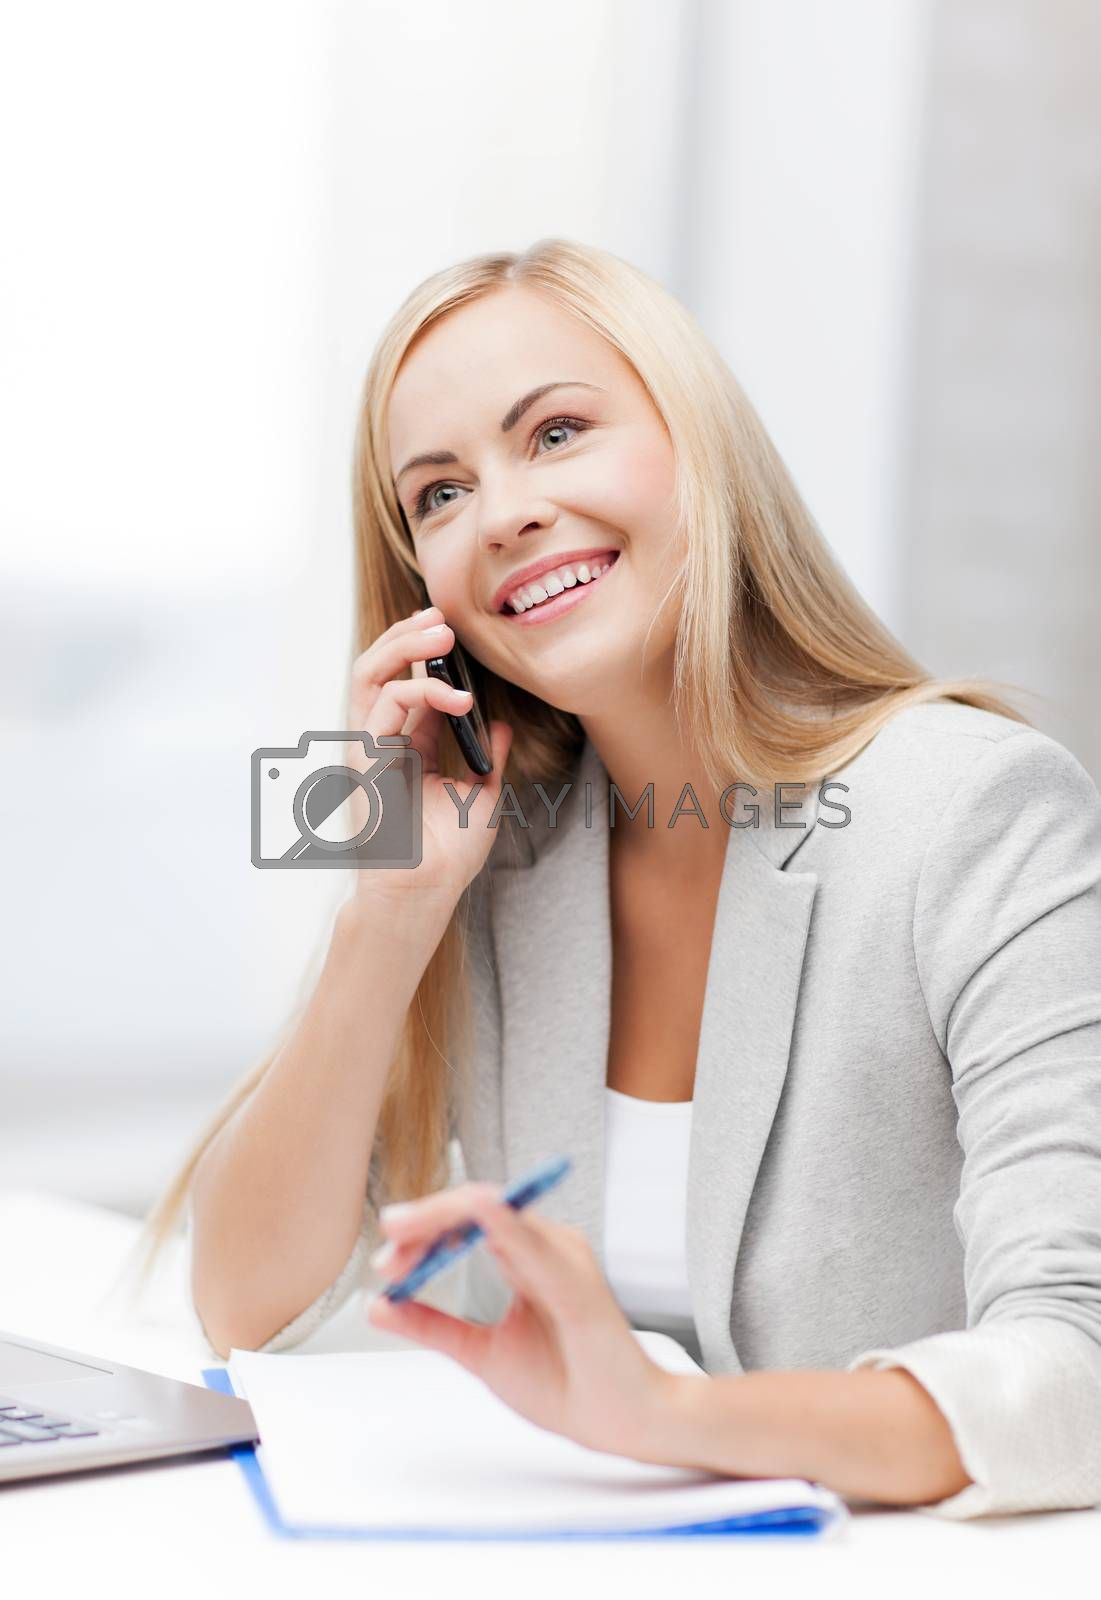 businesswoman with phone by dolgachov